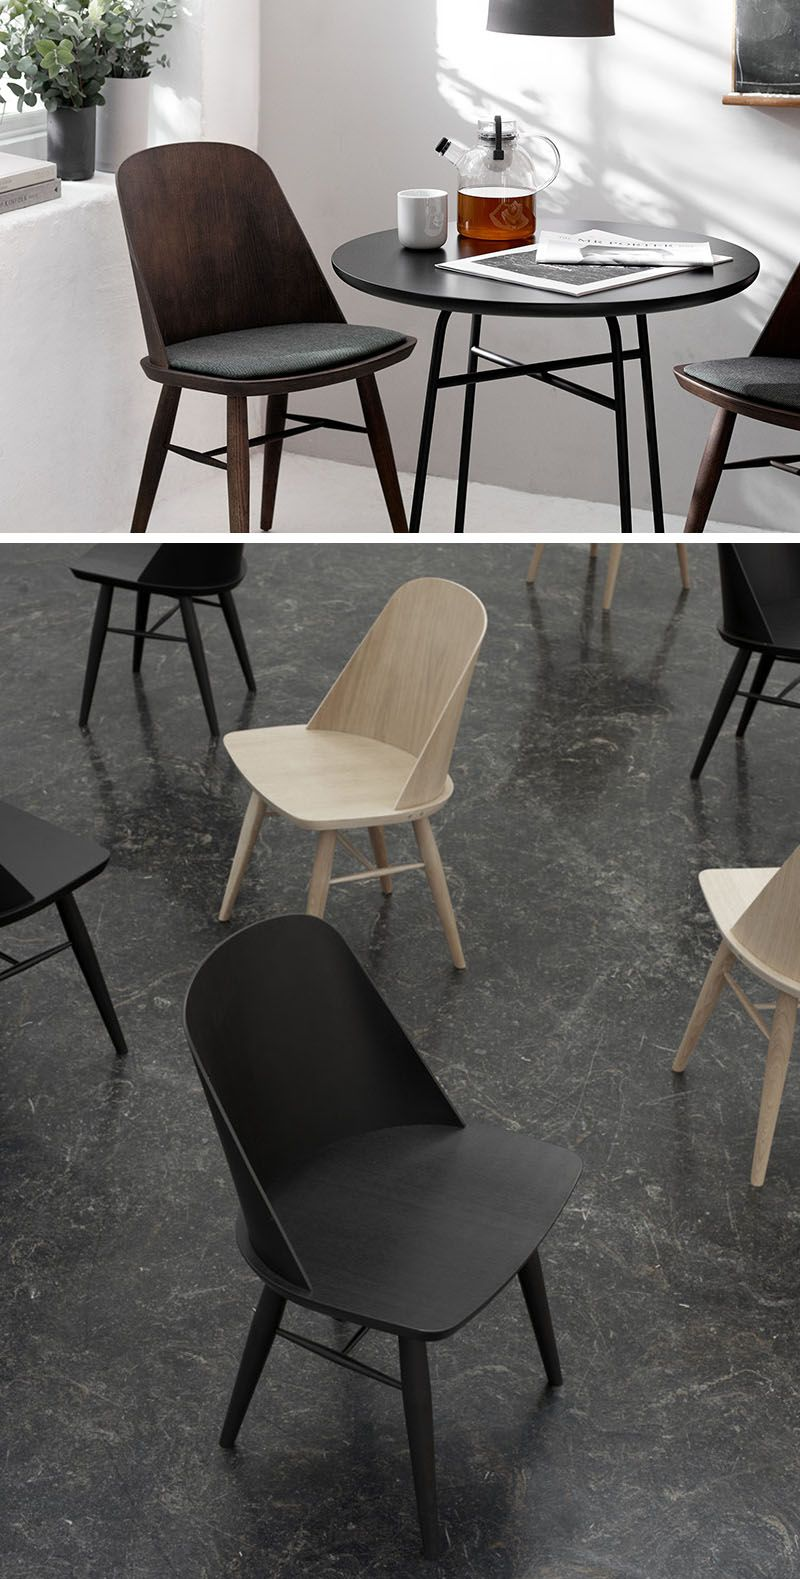 modern wood chair. Furniture Ideas - 14 Modern Wood Chairs For Your Dining Room // The Curved Backrest Of This Wooden Chair Adds An Extra Bit Sturdiness While Smooth